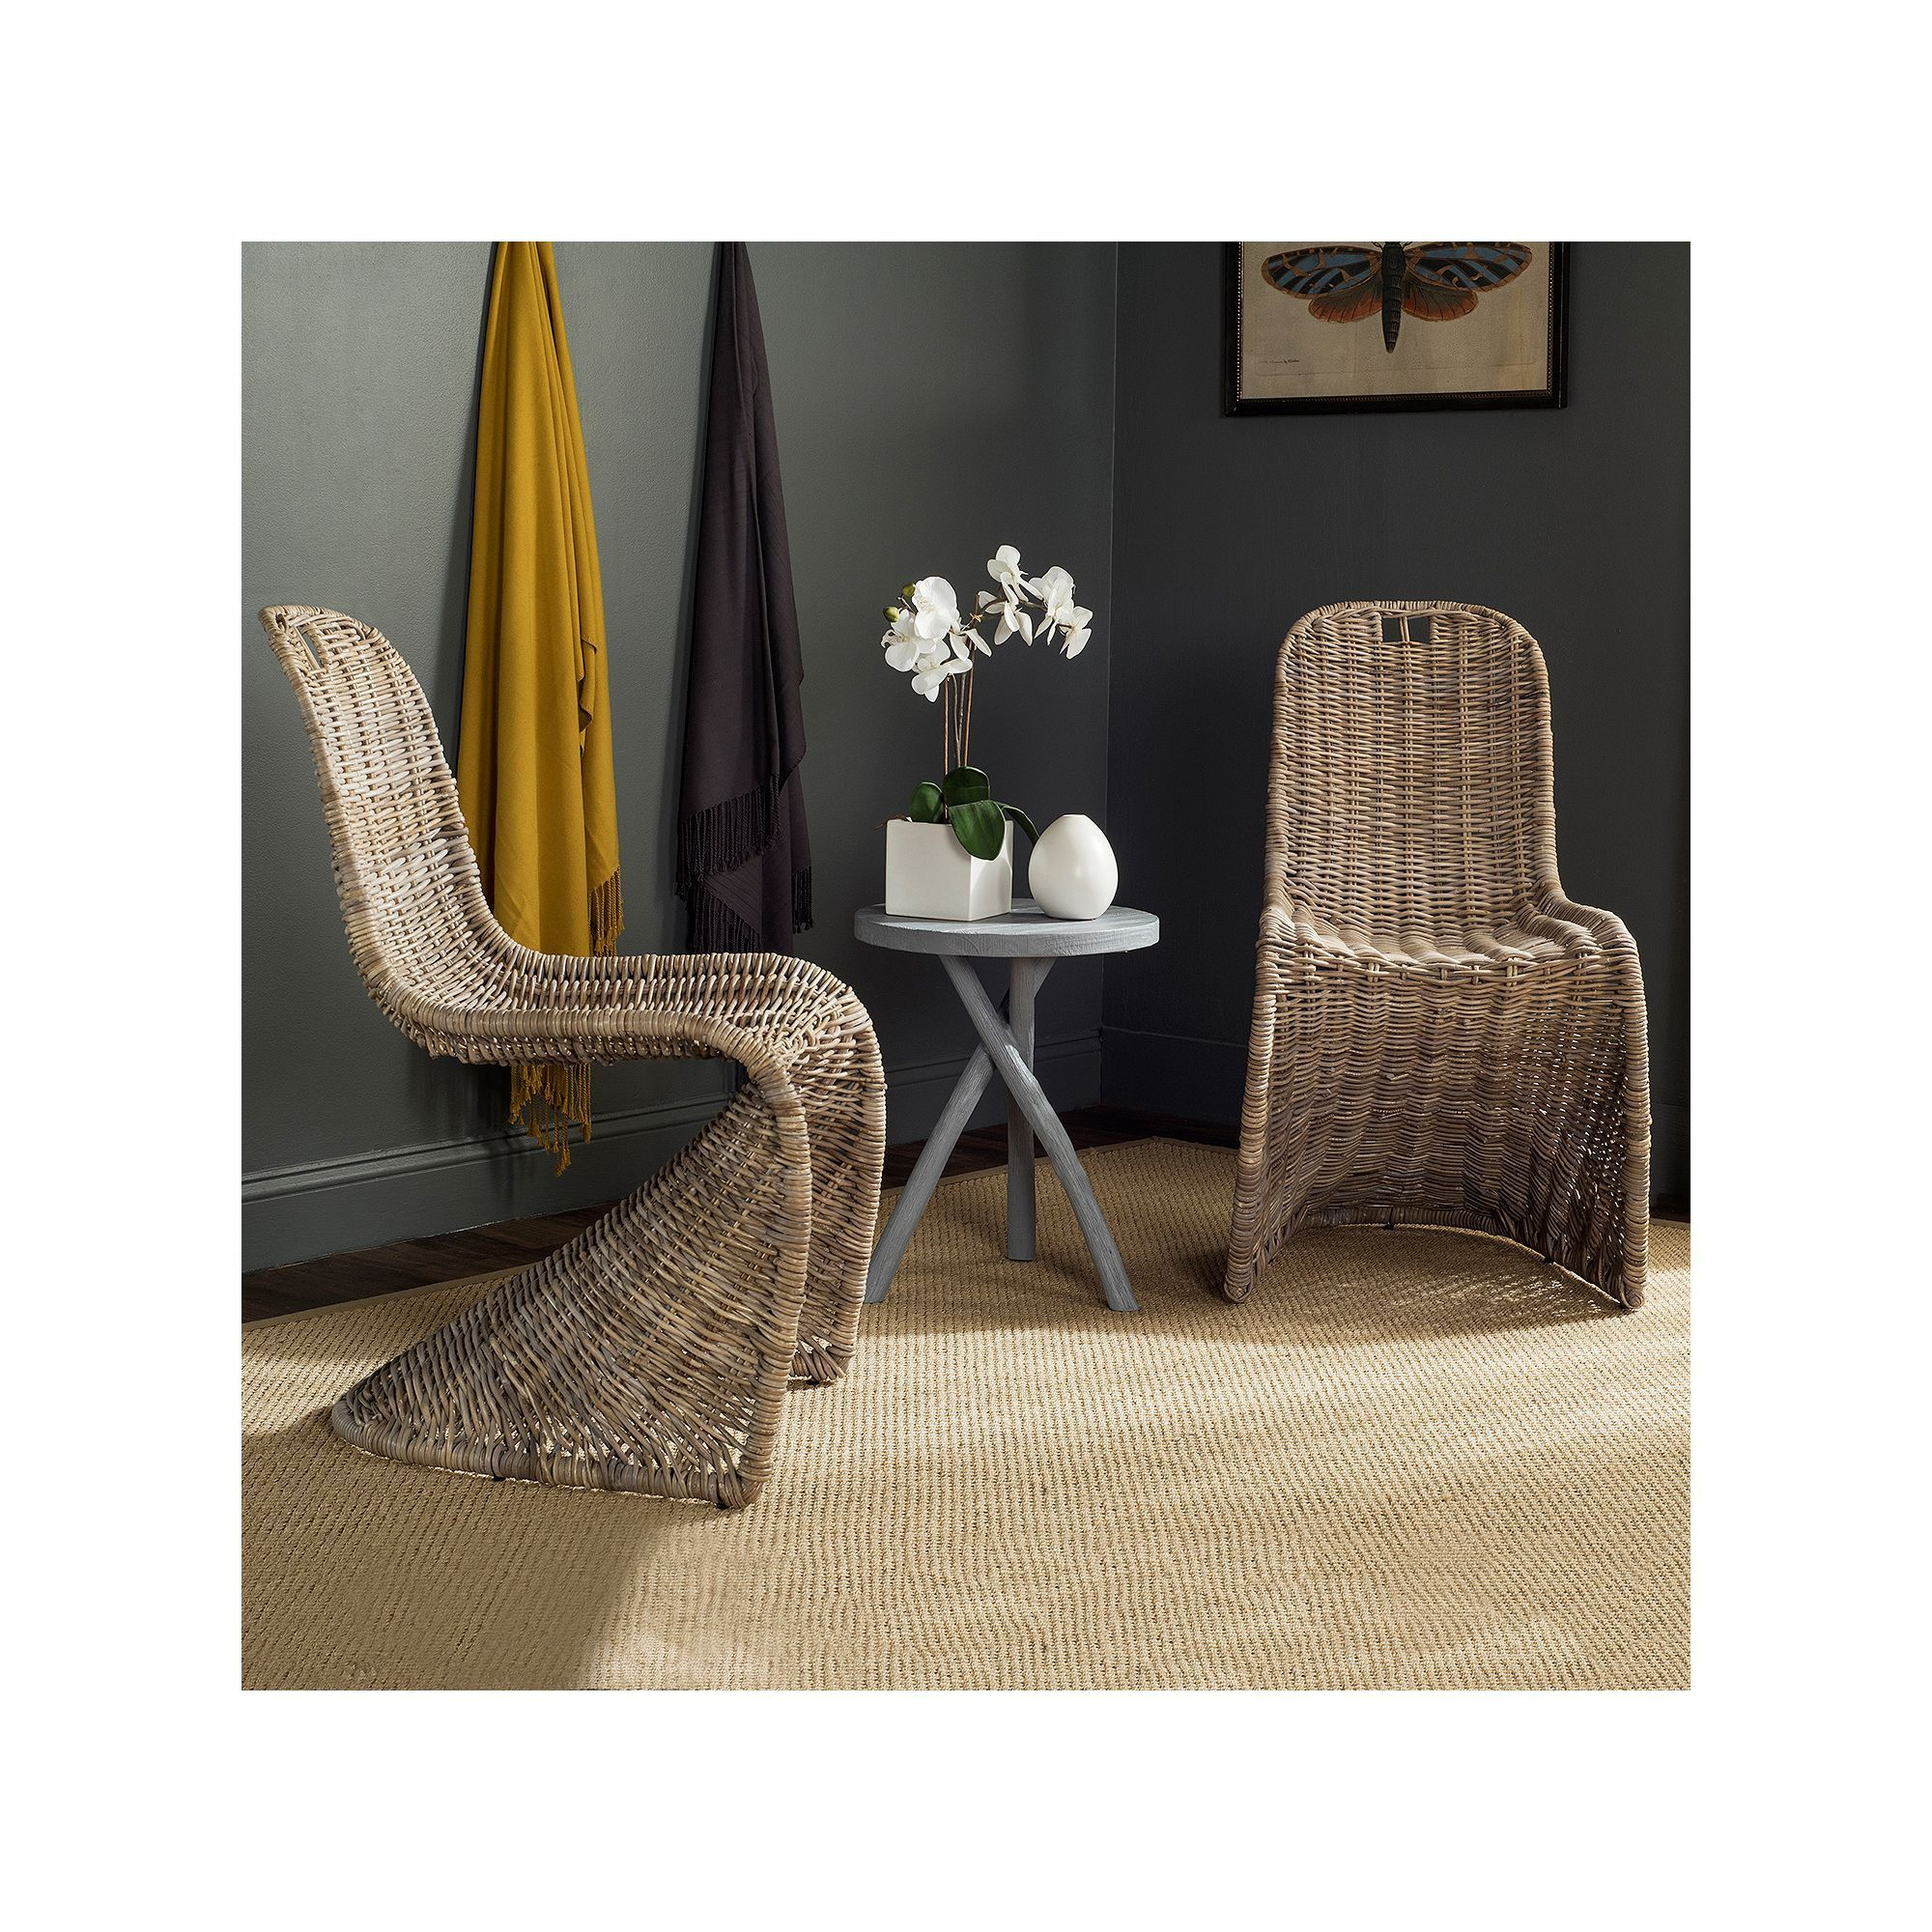 Korbstuhl Esszimmer Safavieh Cilombo Wicker Dining Chair 2 Piece Set Products